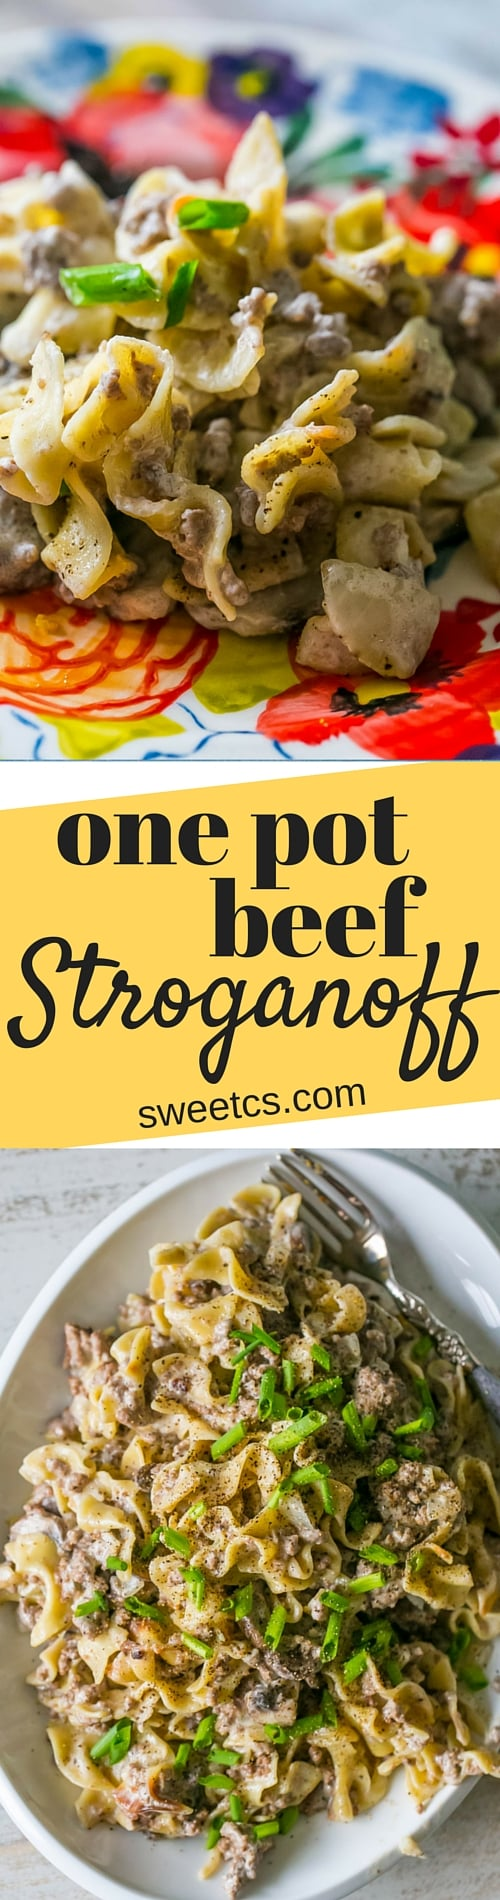 This one pot stroganoff is so delicious and easy - tons of rich flavor without a big huge mess!